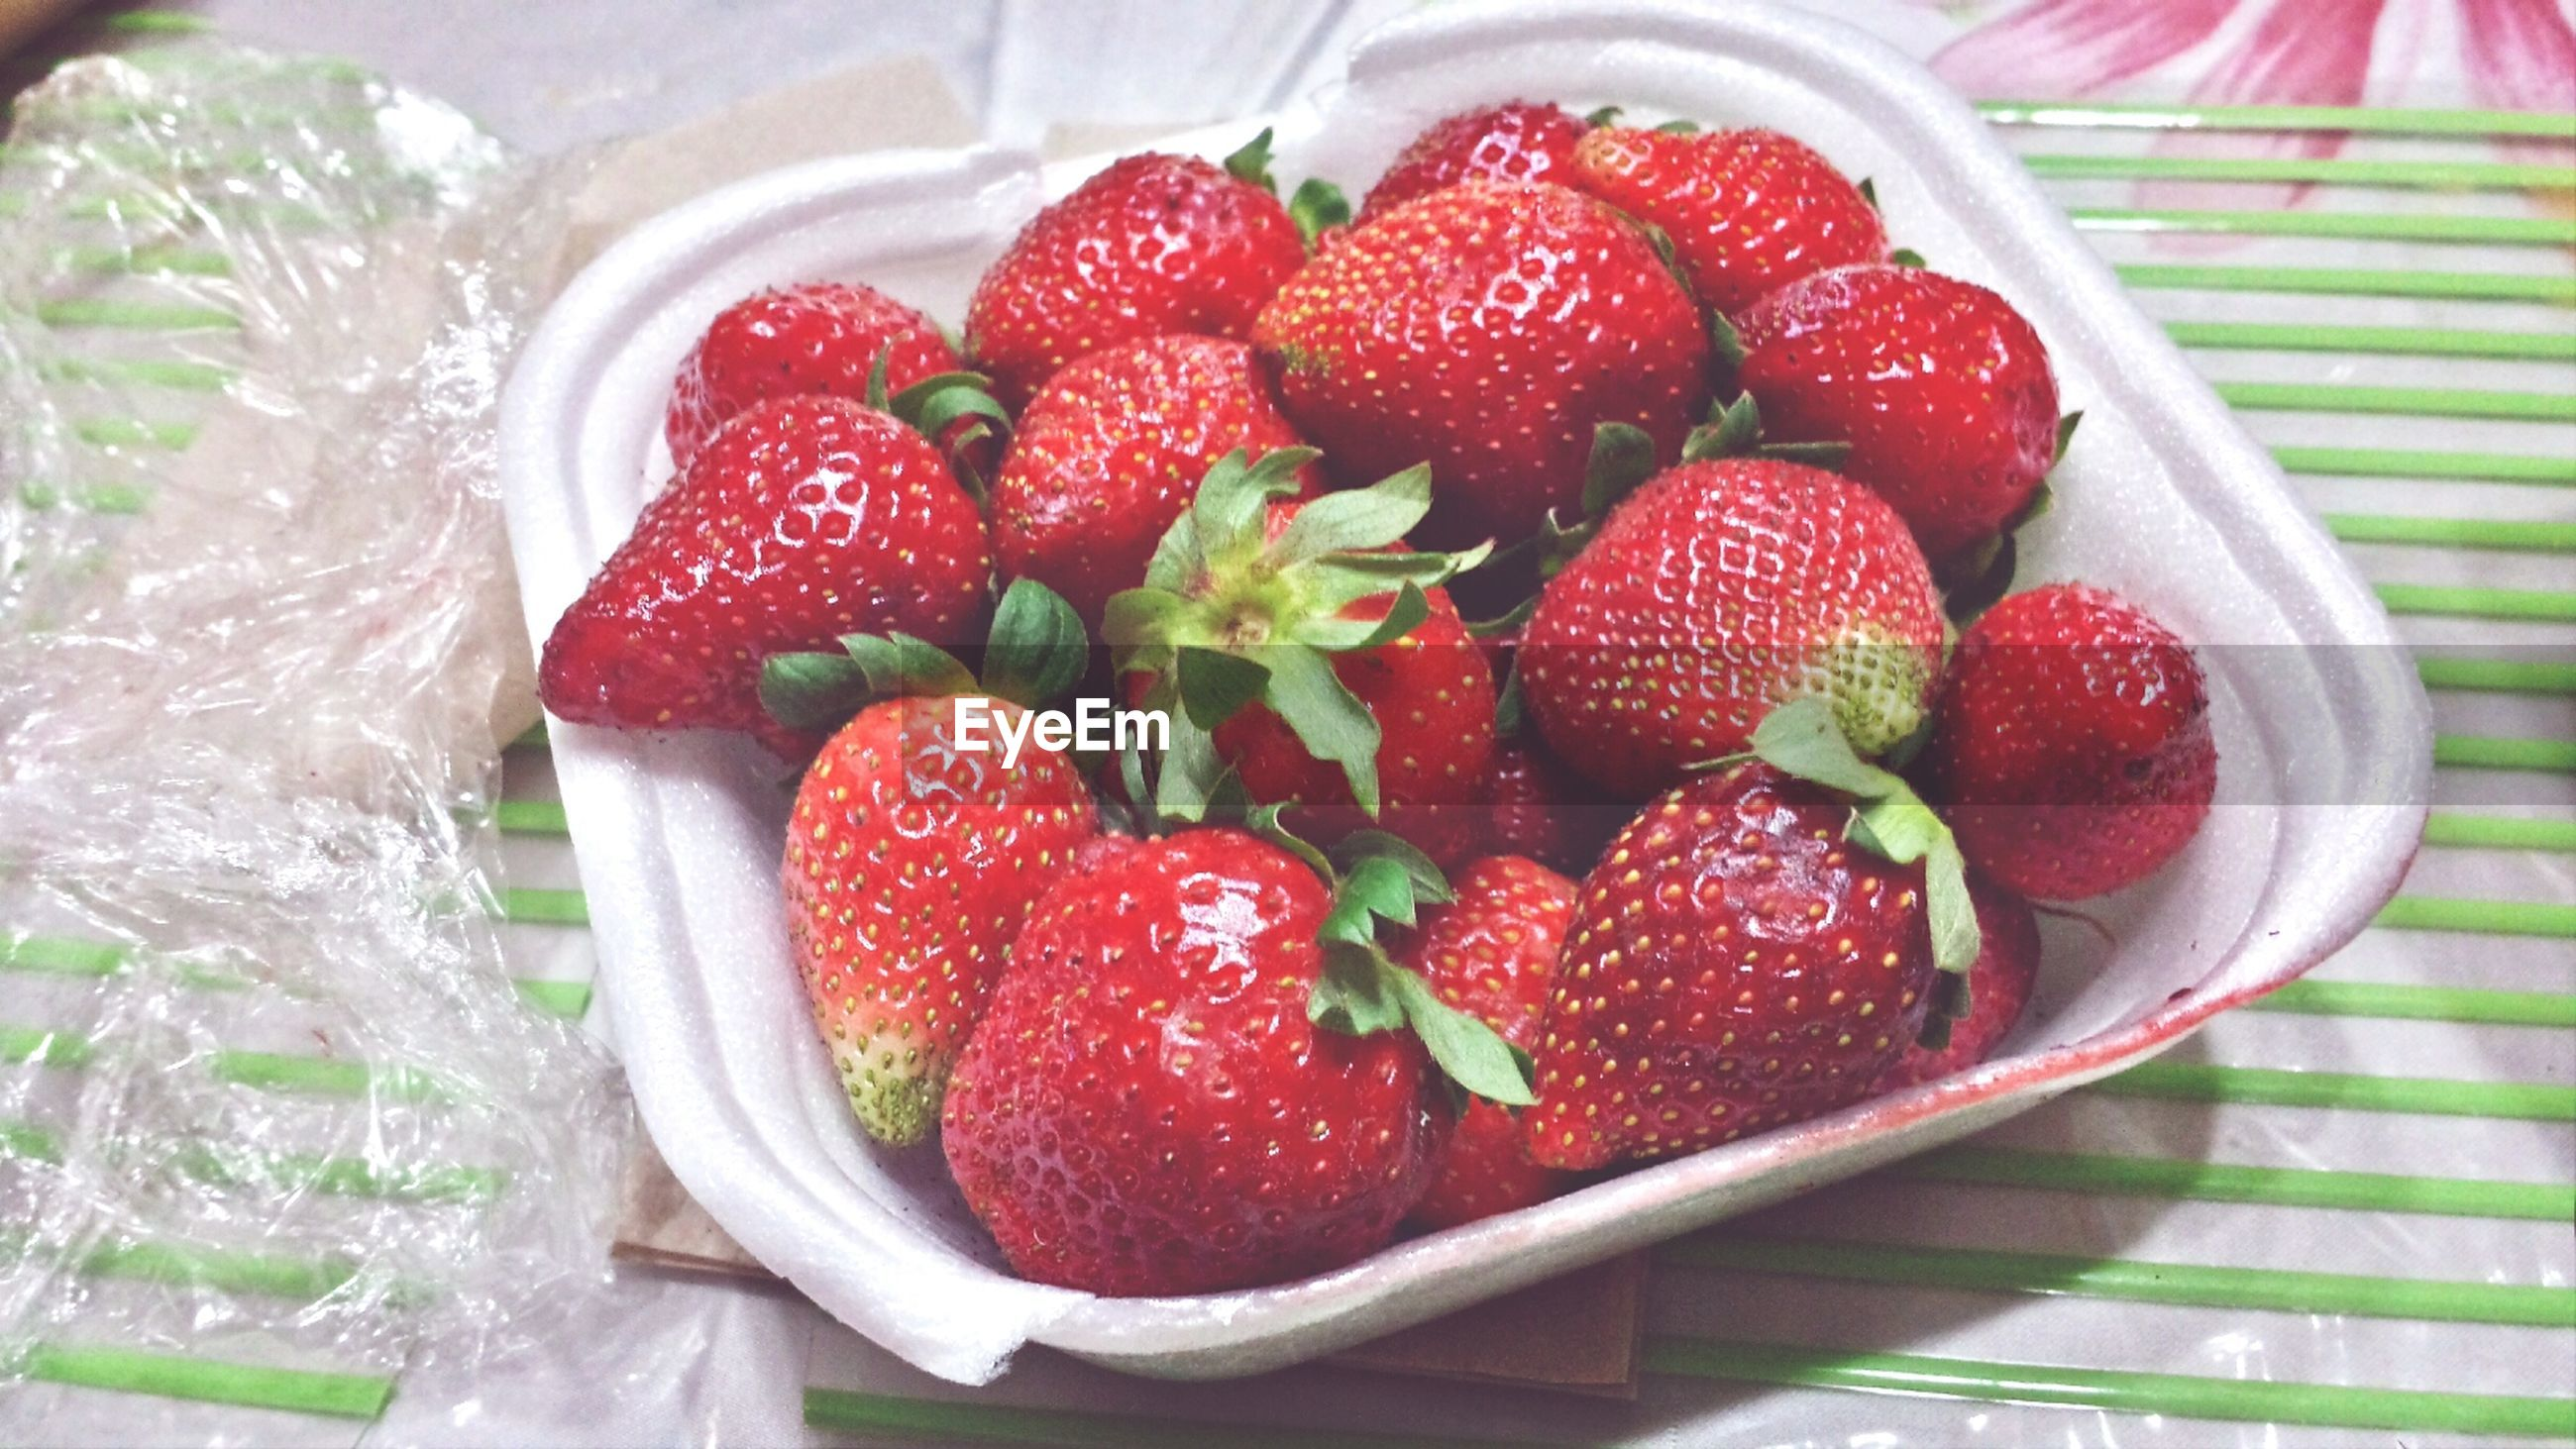 food and drink, food, fruit, freshness, healthy eating, strawberry, red, indoors, berry fruit, raspberry, still life, bowl, high angle view, ripe, table, close-up, berry, juicy, organic, plate